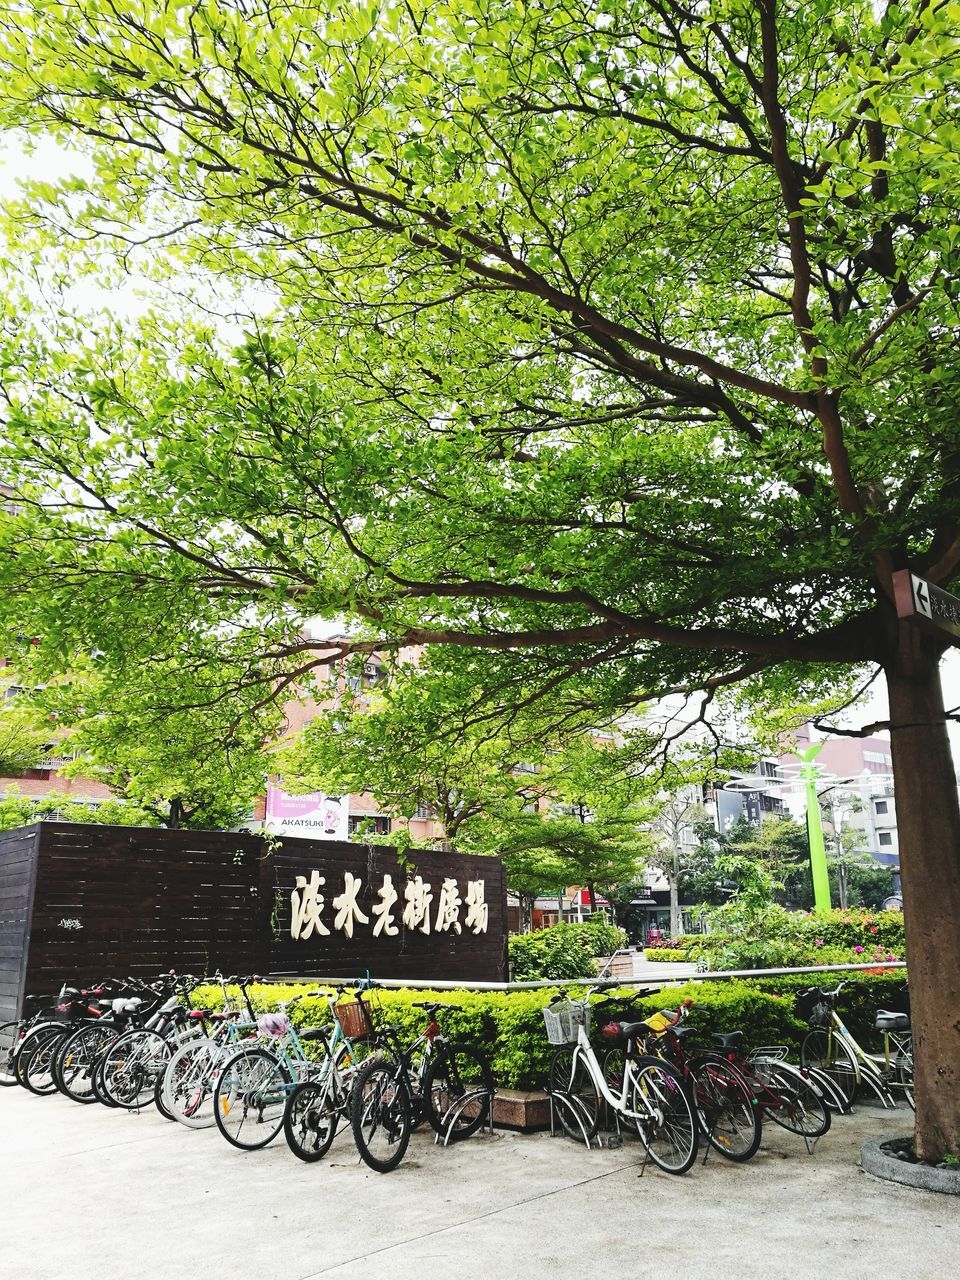 bicycle, tree, text, transportation, communication, mode of transport, day, outdoors, no people, nature